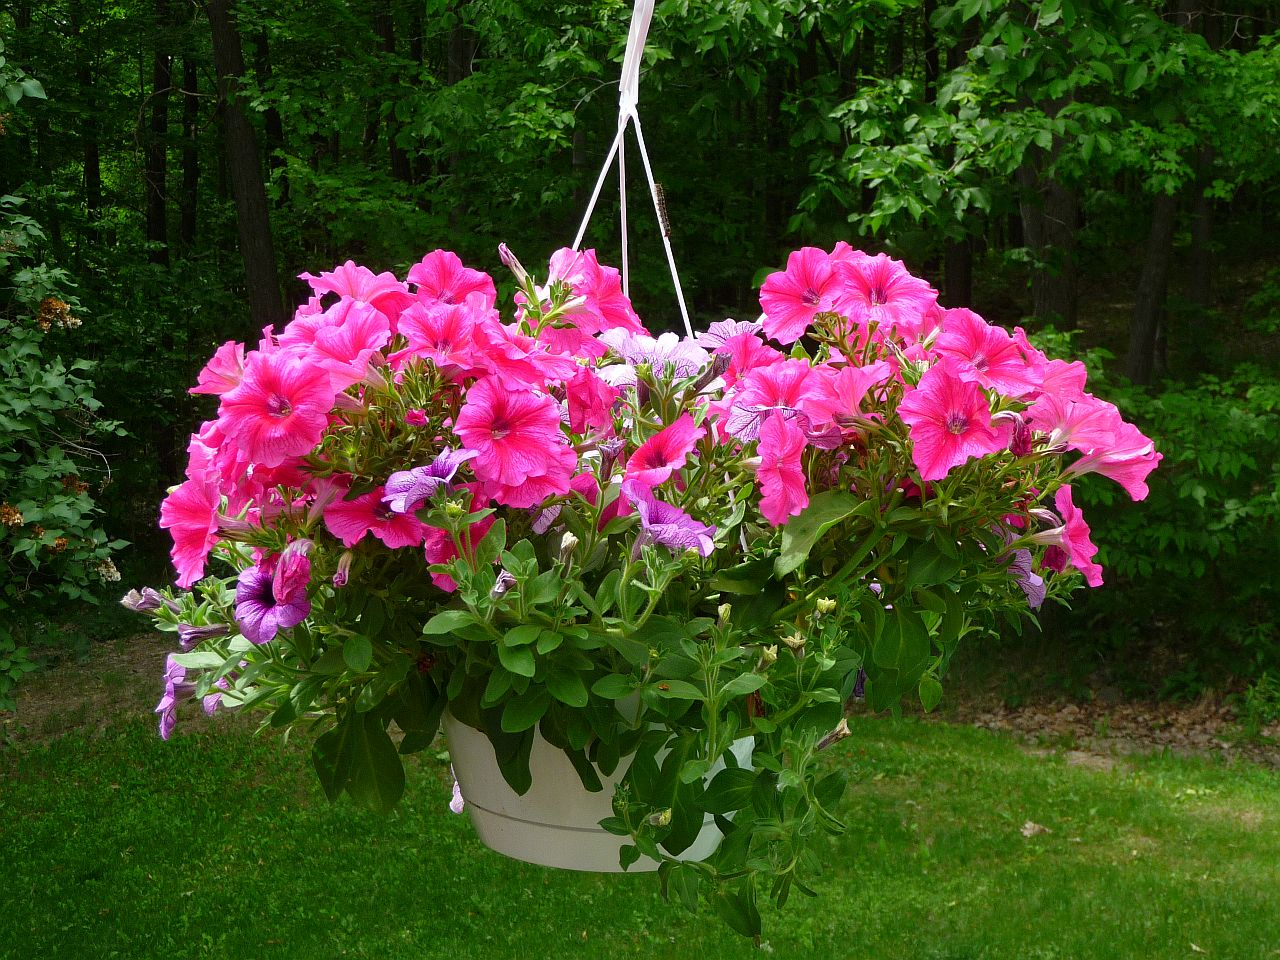 Welcome to Hanging basket flowers